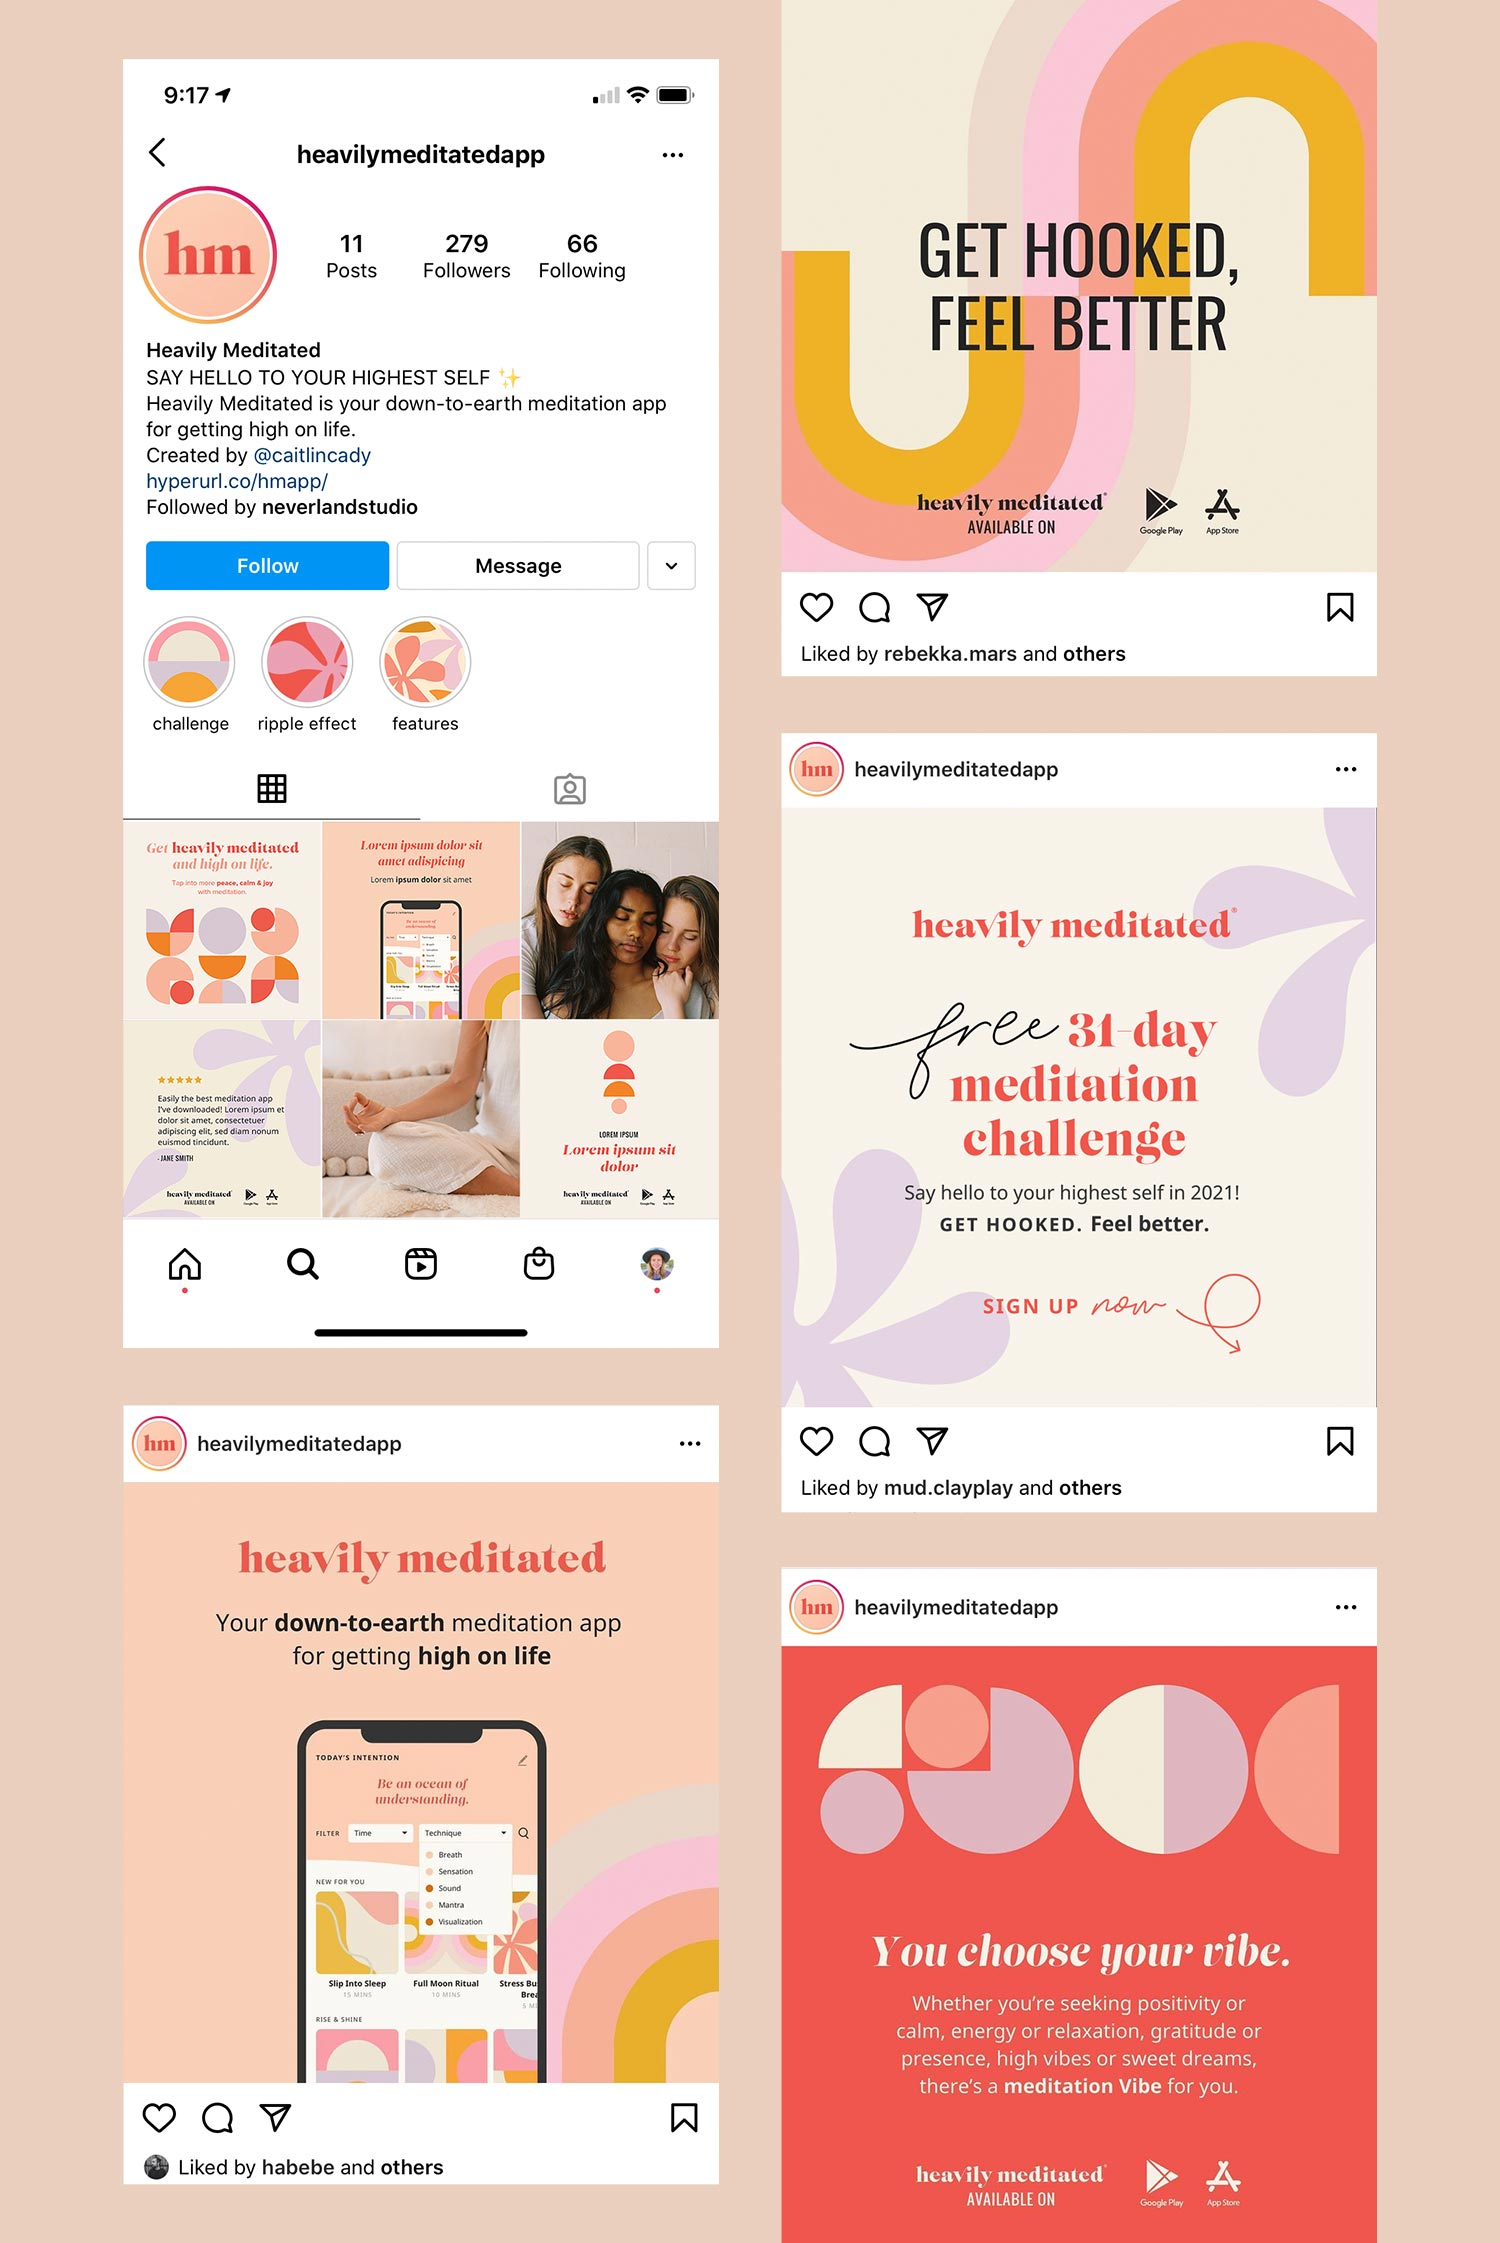 Social templates designed for Heavily Meditated's Instagram feed